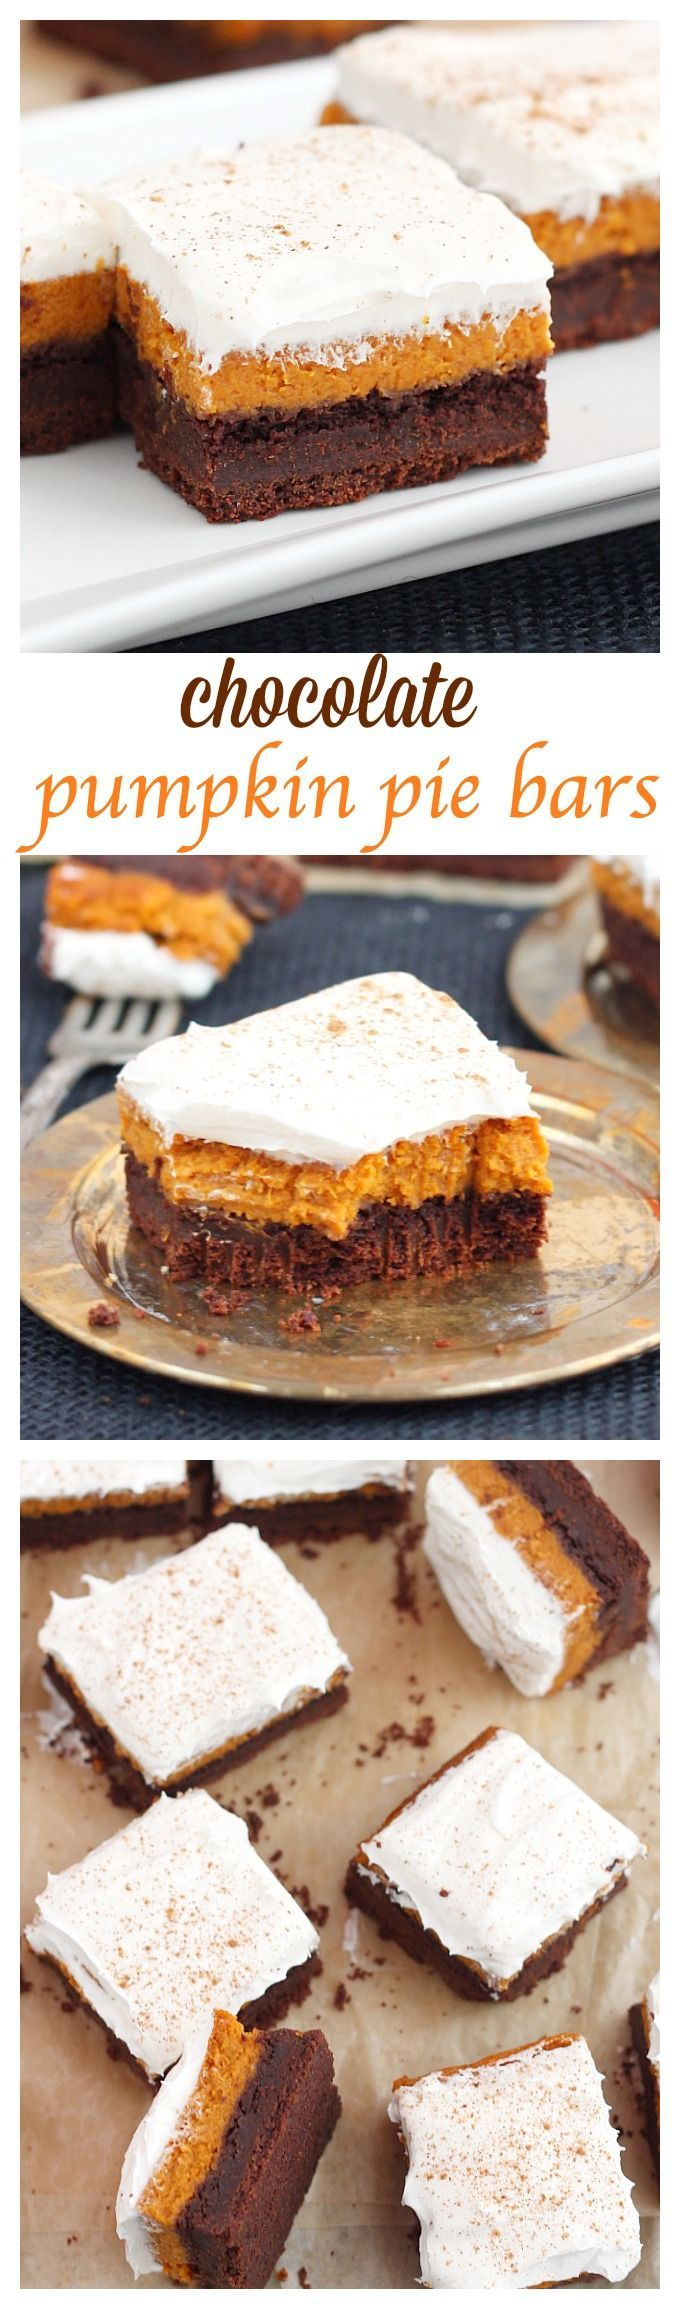 Perfect for fall potlucks, these chocolate pumpkin bars feature layers or rich chocolate cake, silky pumpkin pie and light frosting and finished with a dust of cinnamon